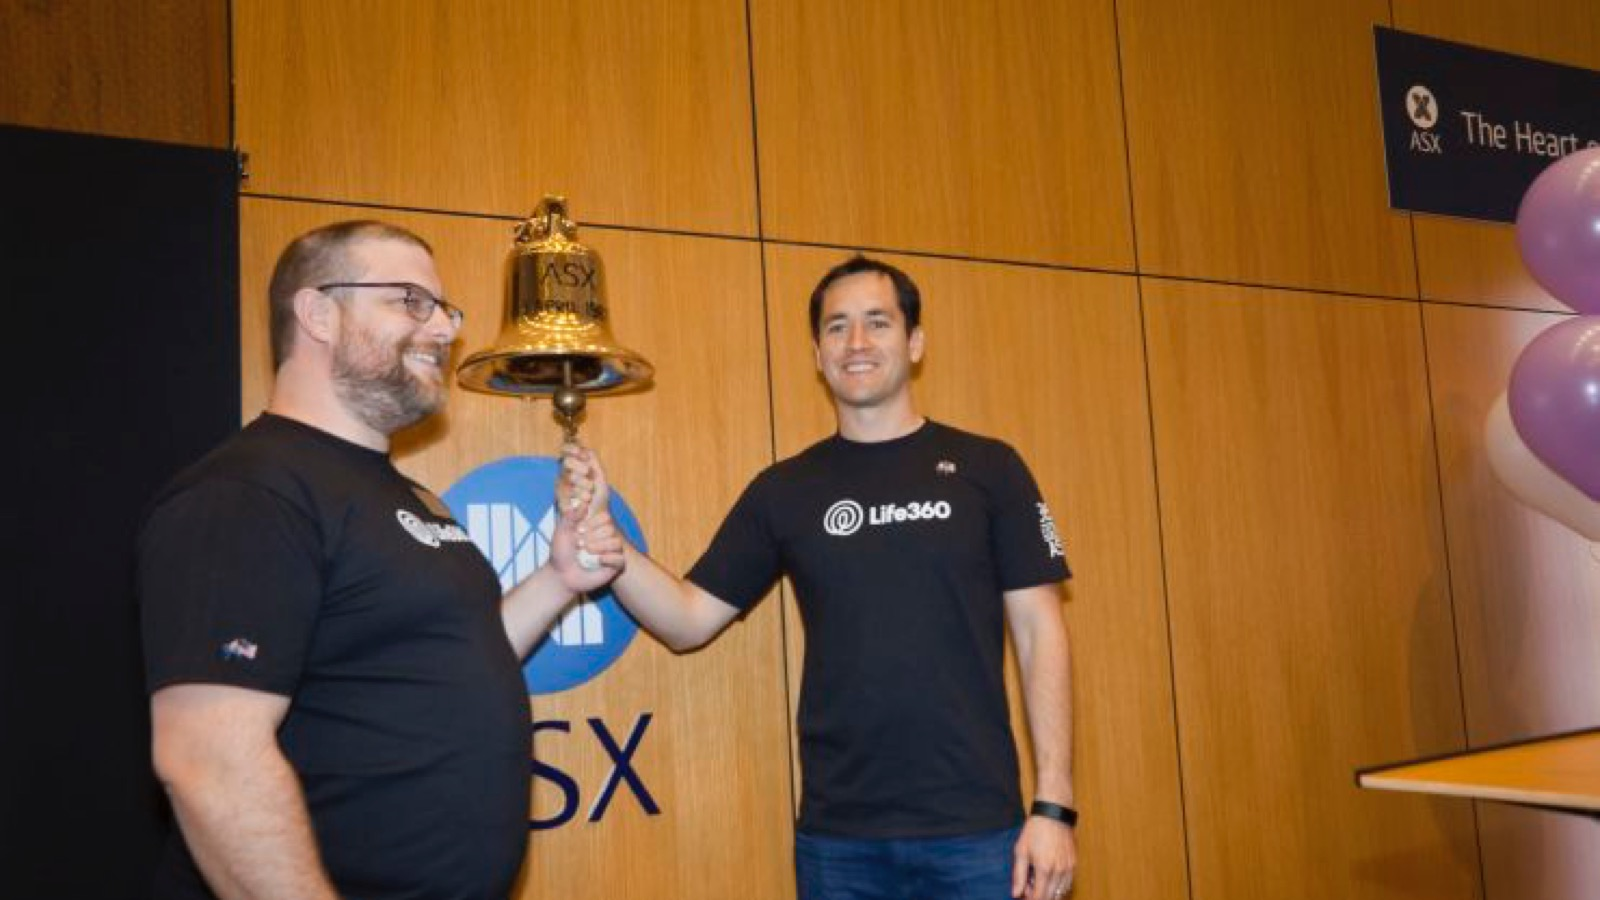 Life360 ringing the bell at the Australian Securities Exchange